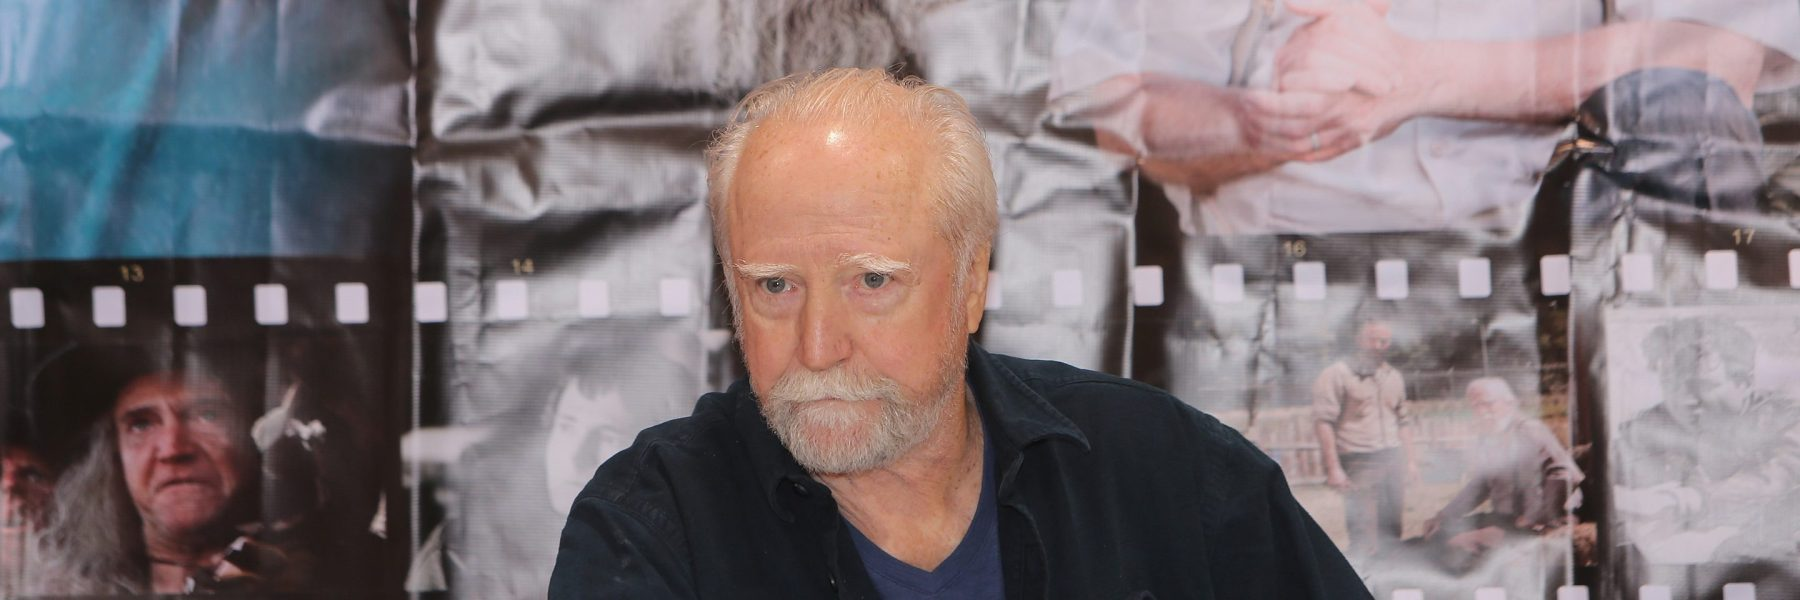 """Scott Wilson (""""Dr. Hershel Greene,"""" on AMC's The Walking Dead) attends the Motor City Comic Con, at Suburban Collection Showplace on May 15, 2015 in Novi, Michigan.  (Photo by Monica Morgan/WireImage)"""